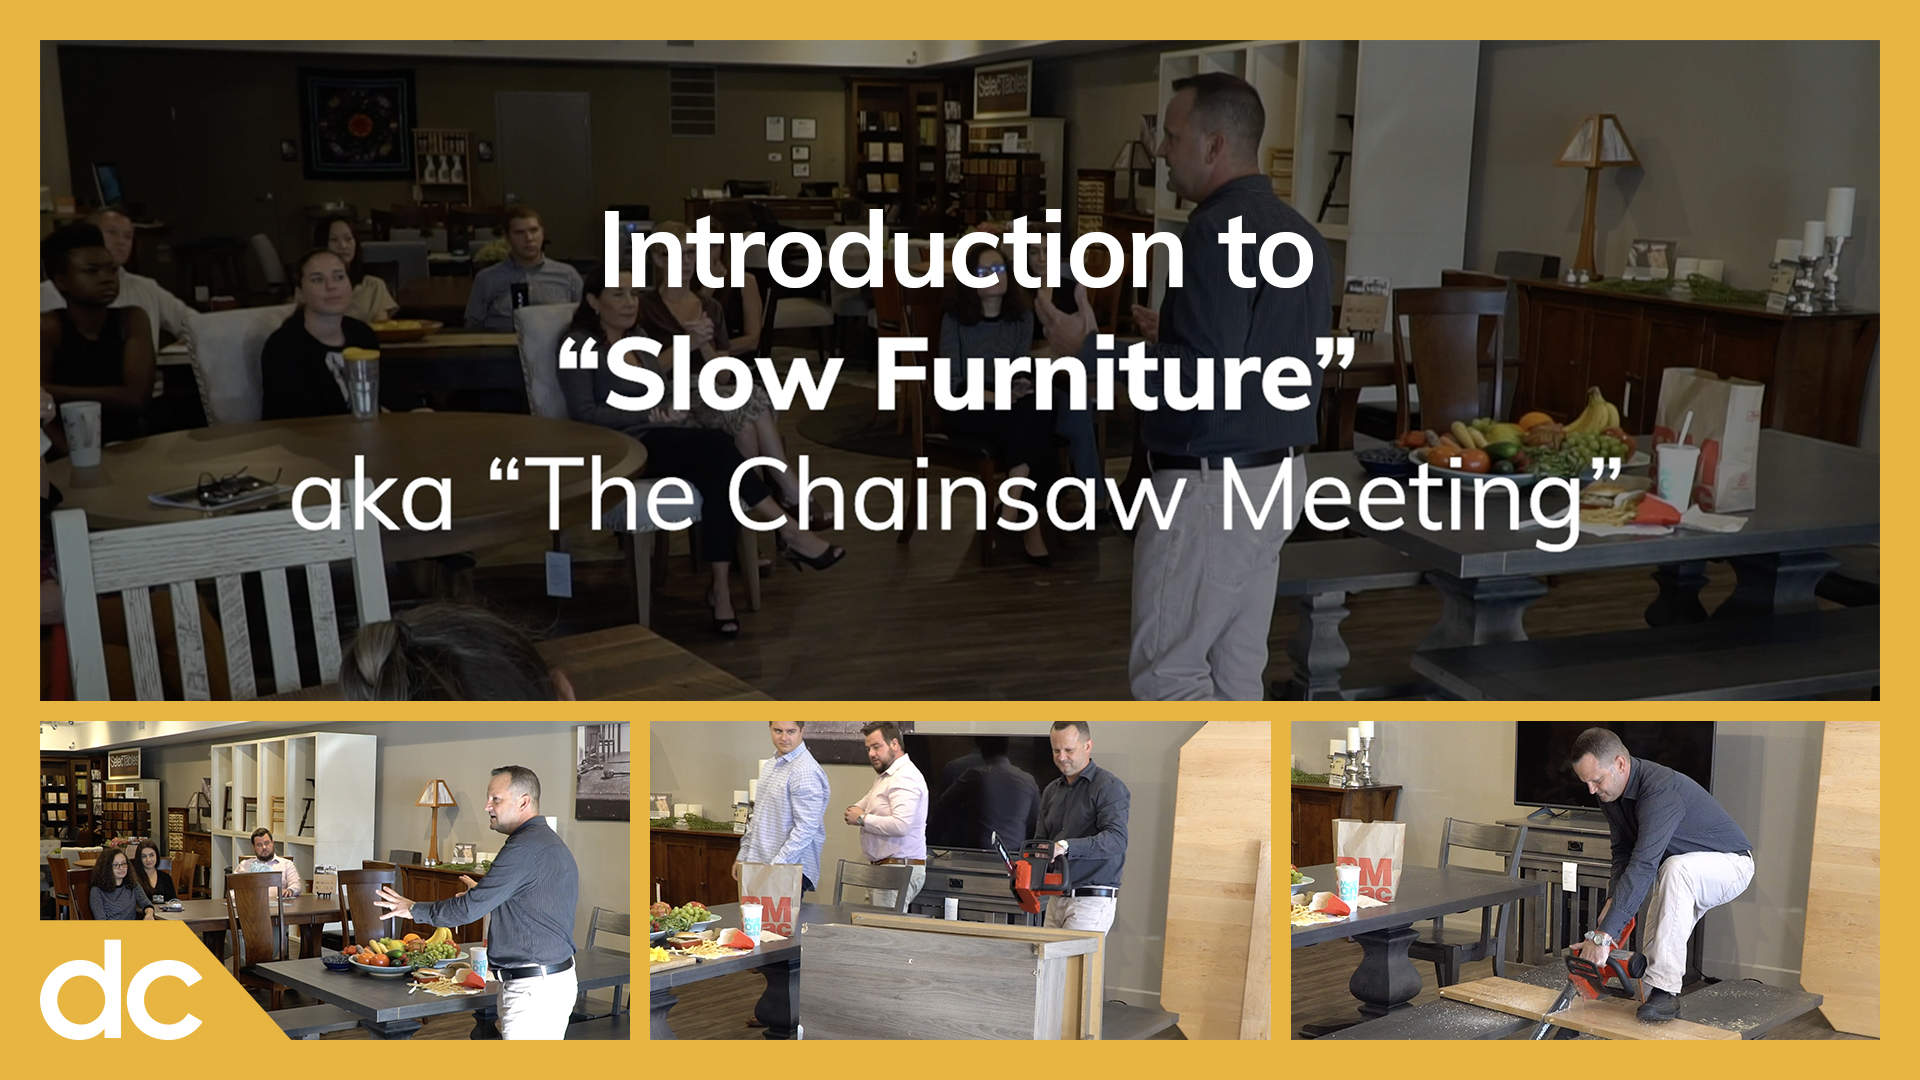 Introduction to Slow Furniture Title